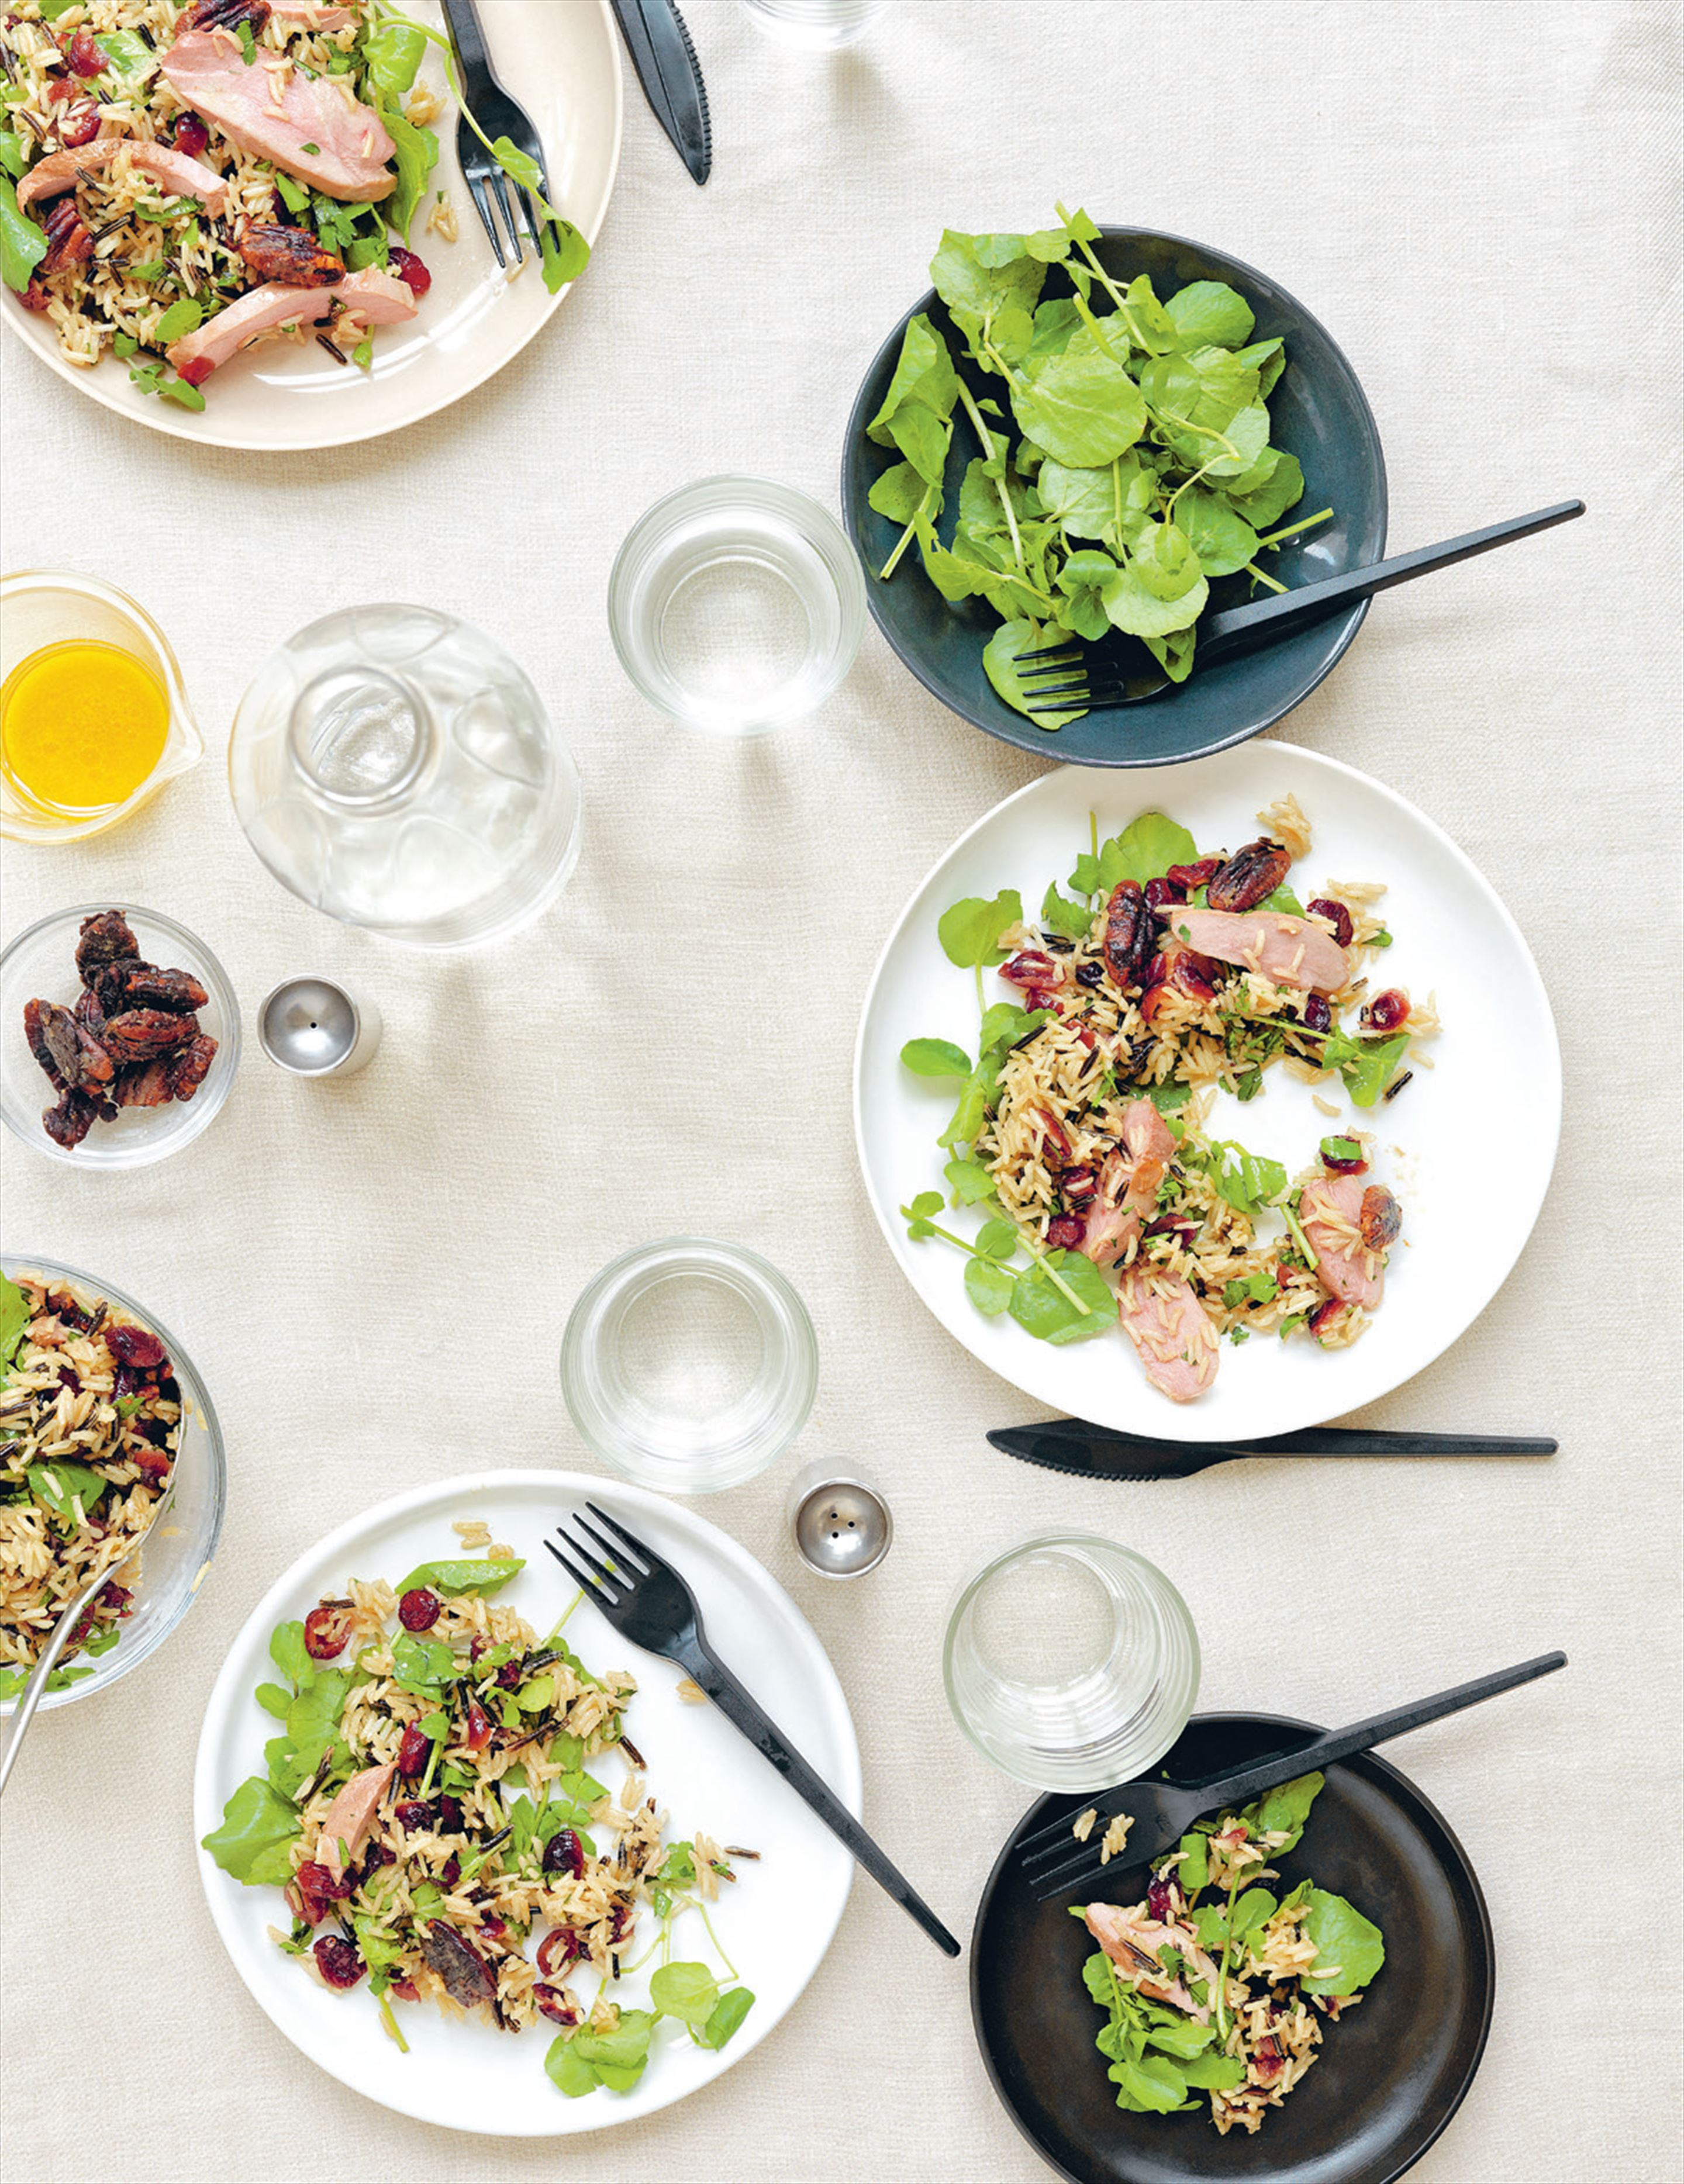 Duck & wild rice salad with cranberries & spiced pecans